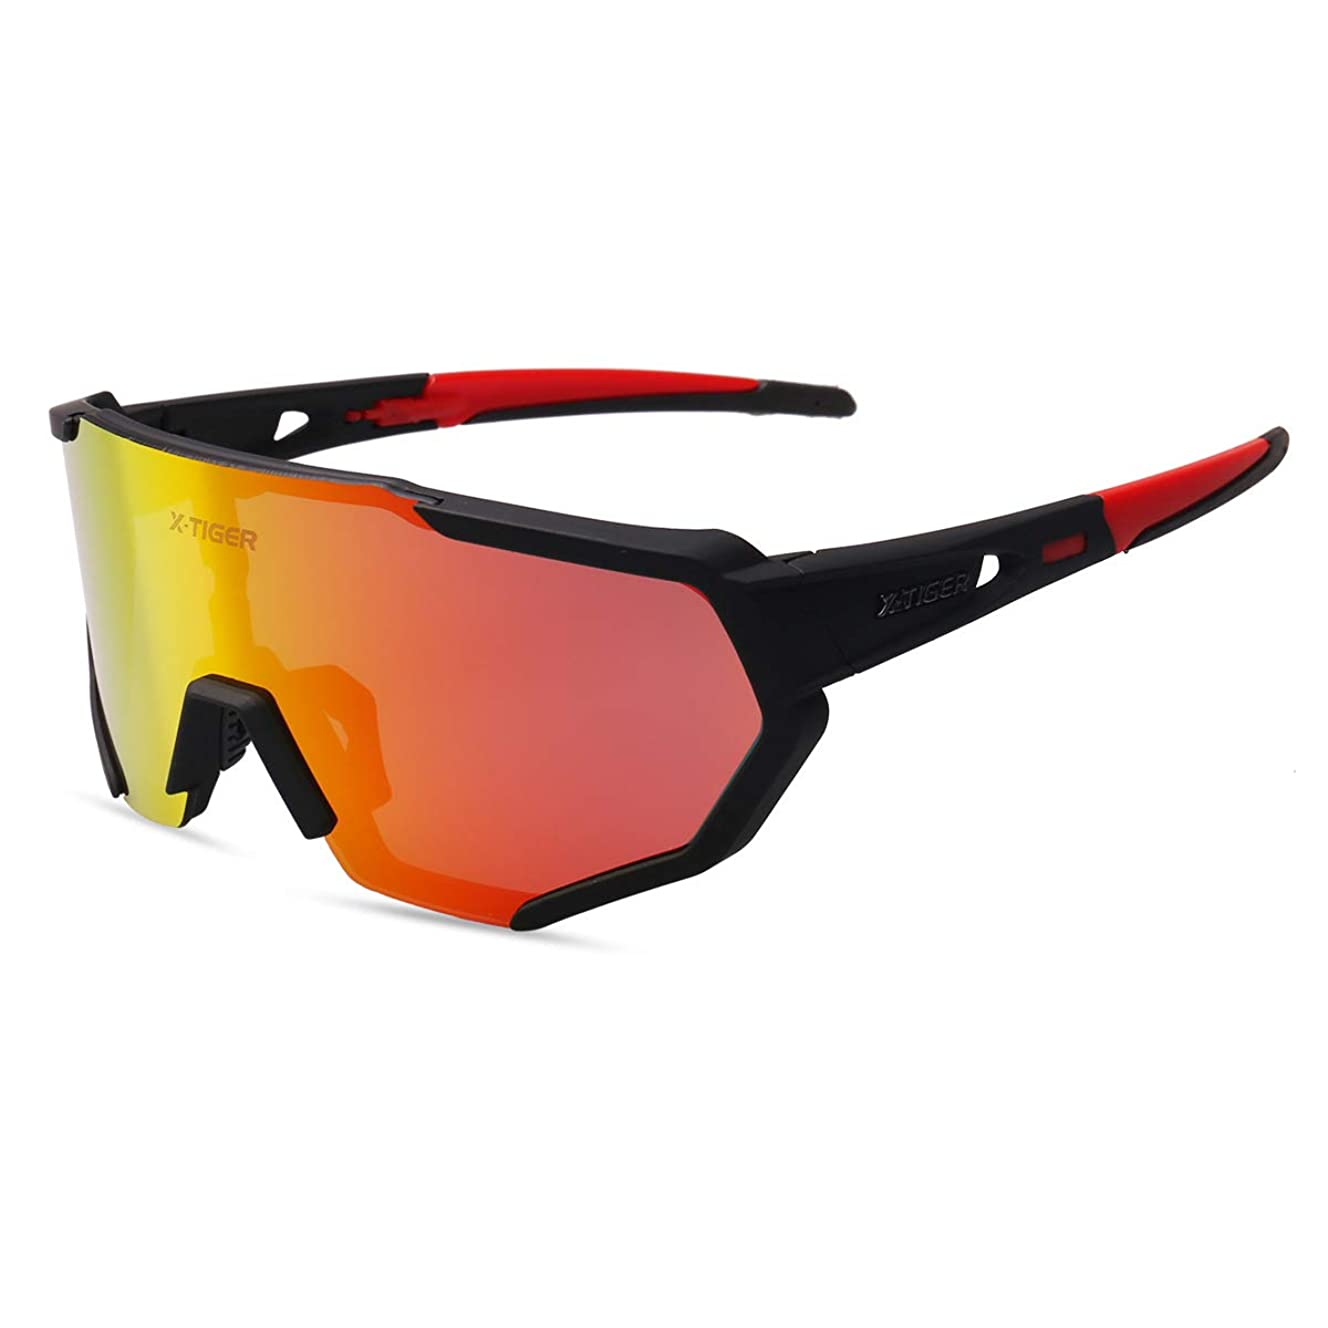 X-TIGER Polarized Sports Sunglasses with 3 Interchangeable Lenses,Mens & Womens Cycling Glasses UV400 Protection,Baseball Running Fishing Golf Driving Sunglasses-9 Colours Available